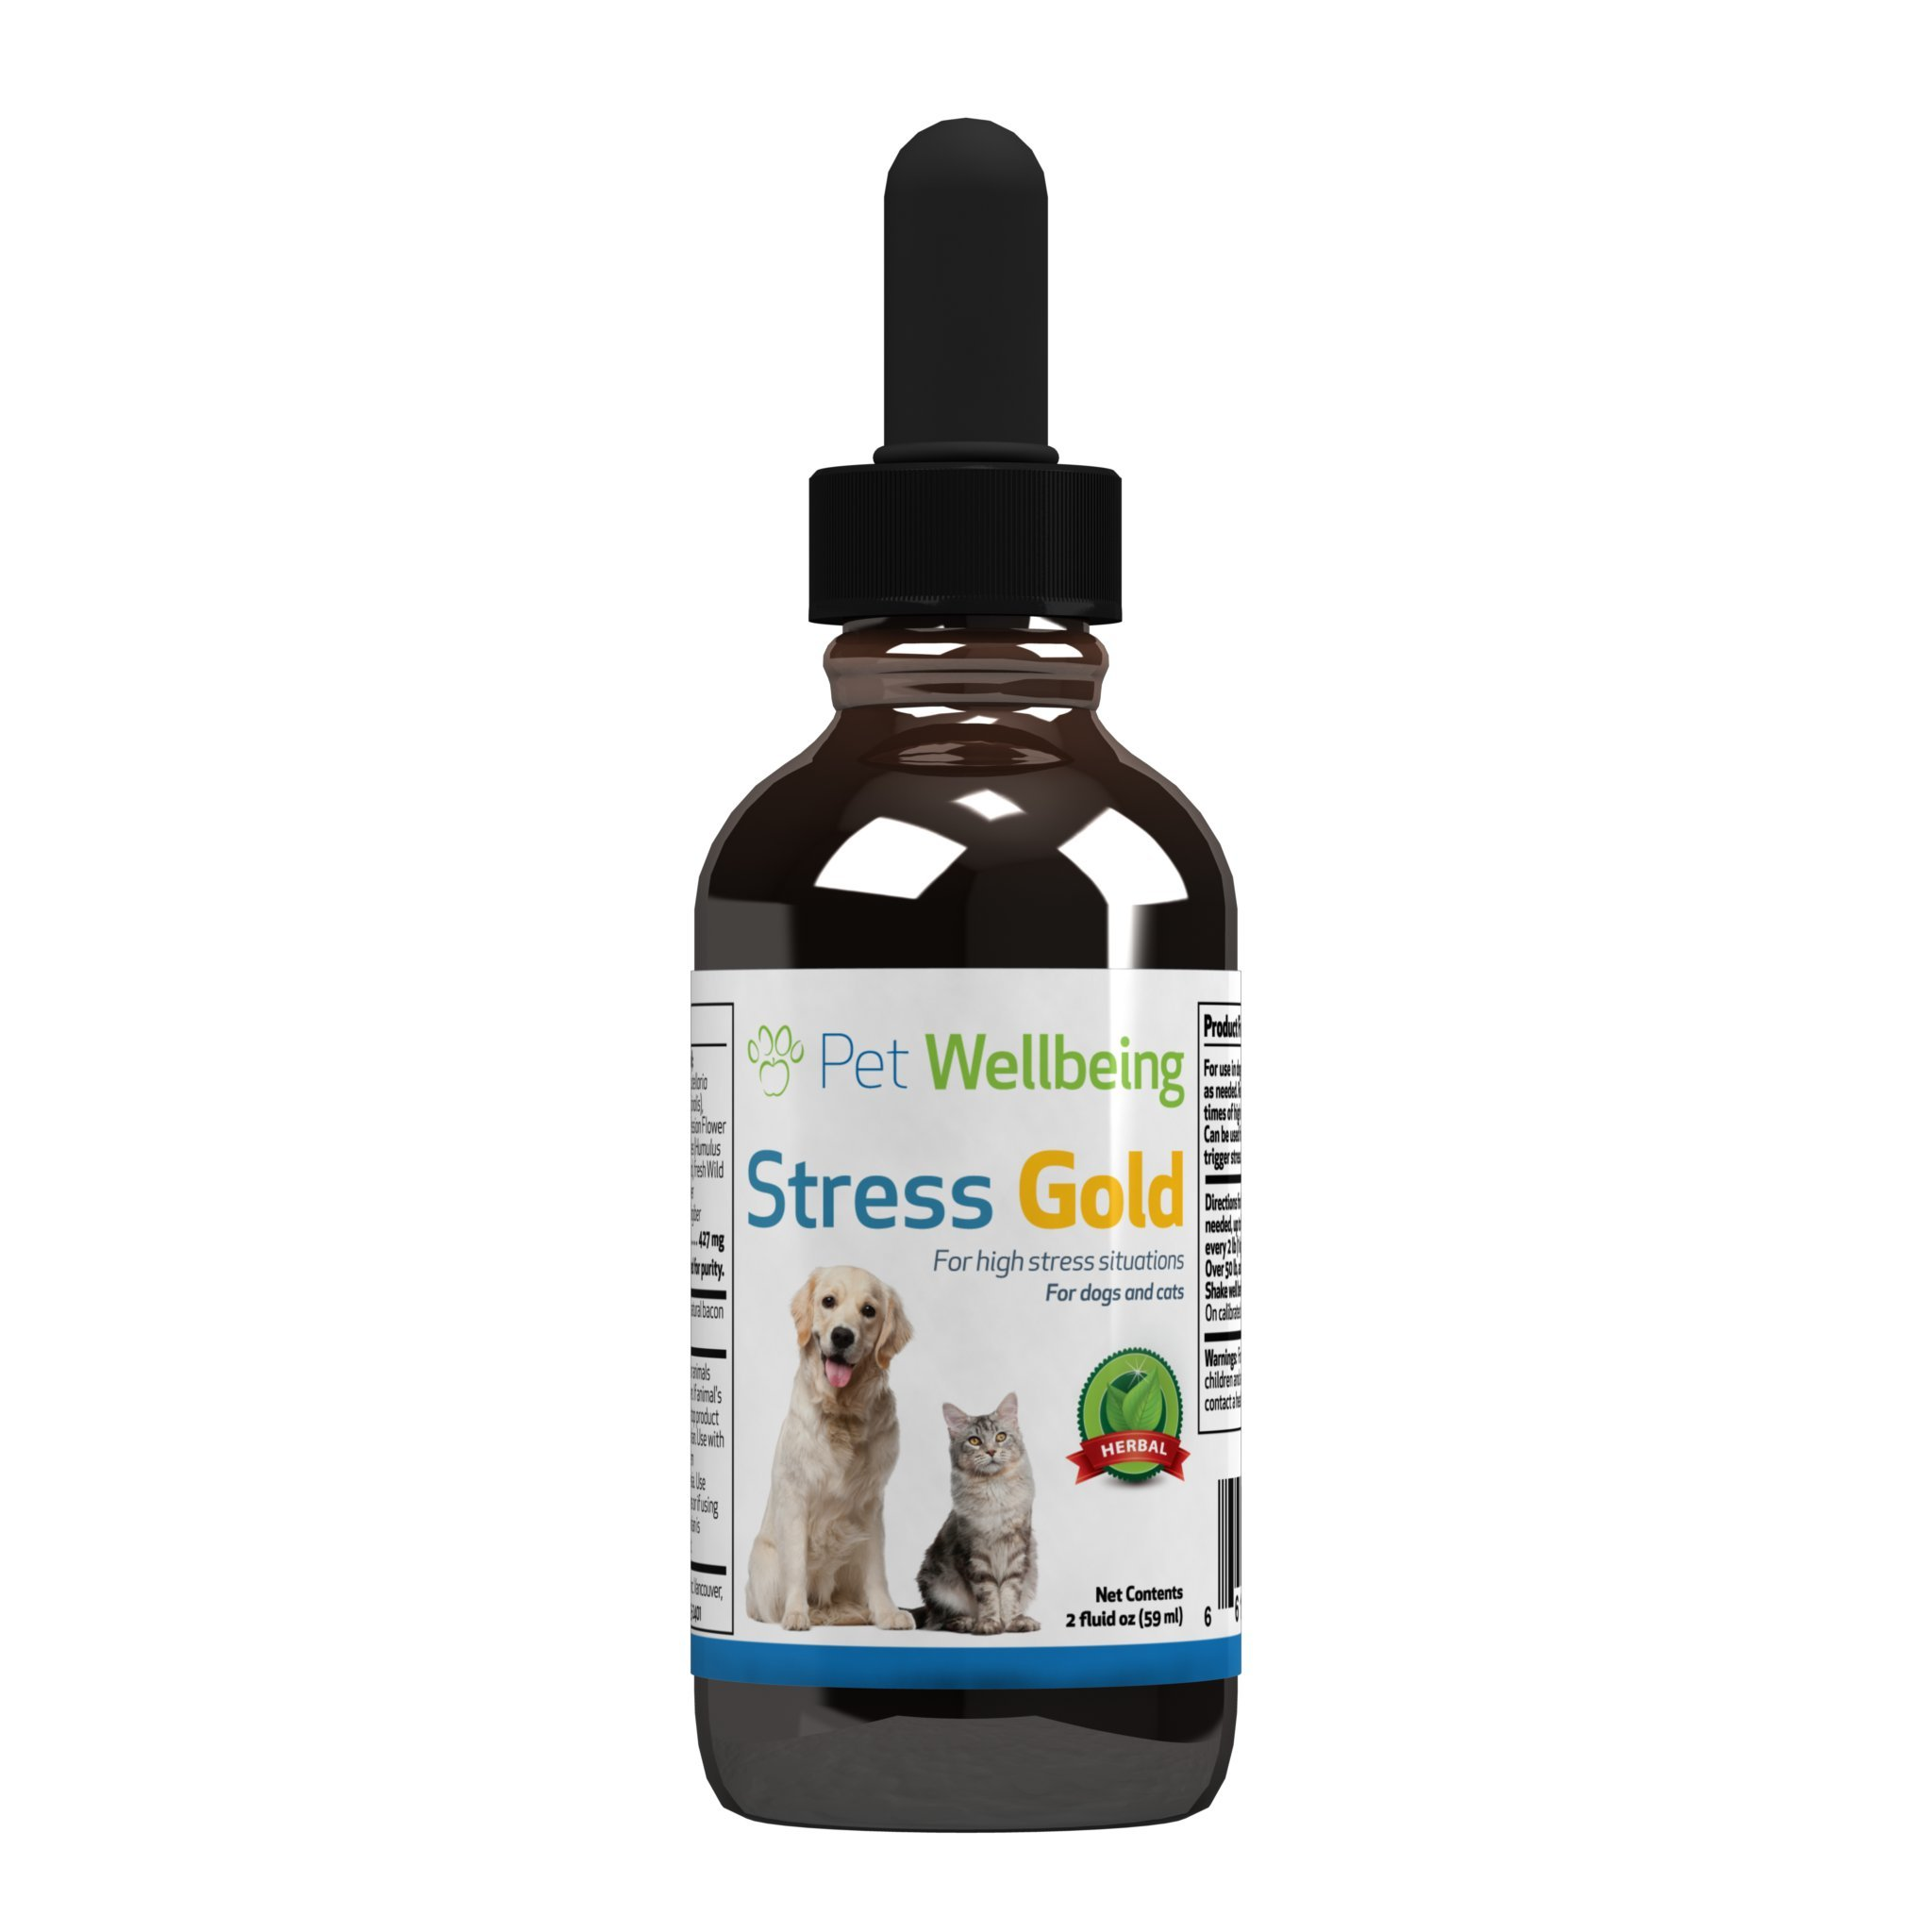 Pet Wellbeing - Stress gold for Cats - Organic Natural Cat Calming and Anxiety Relief - For Stressful Situations in Felines - 2 oz(59ml)